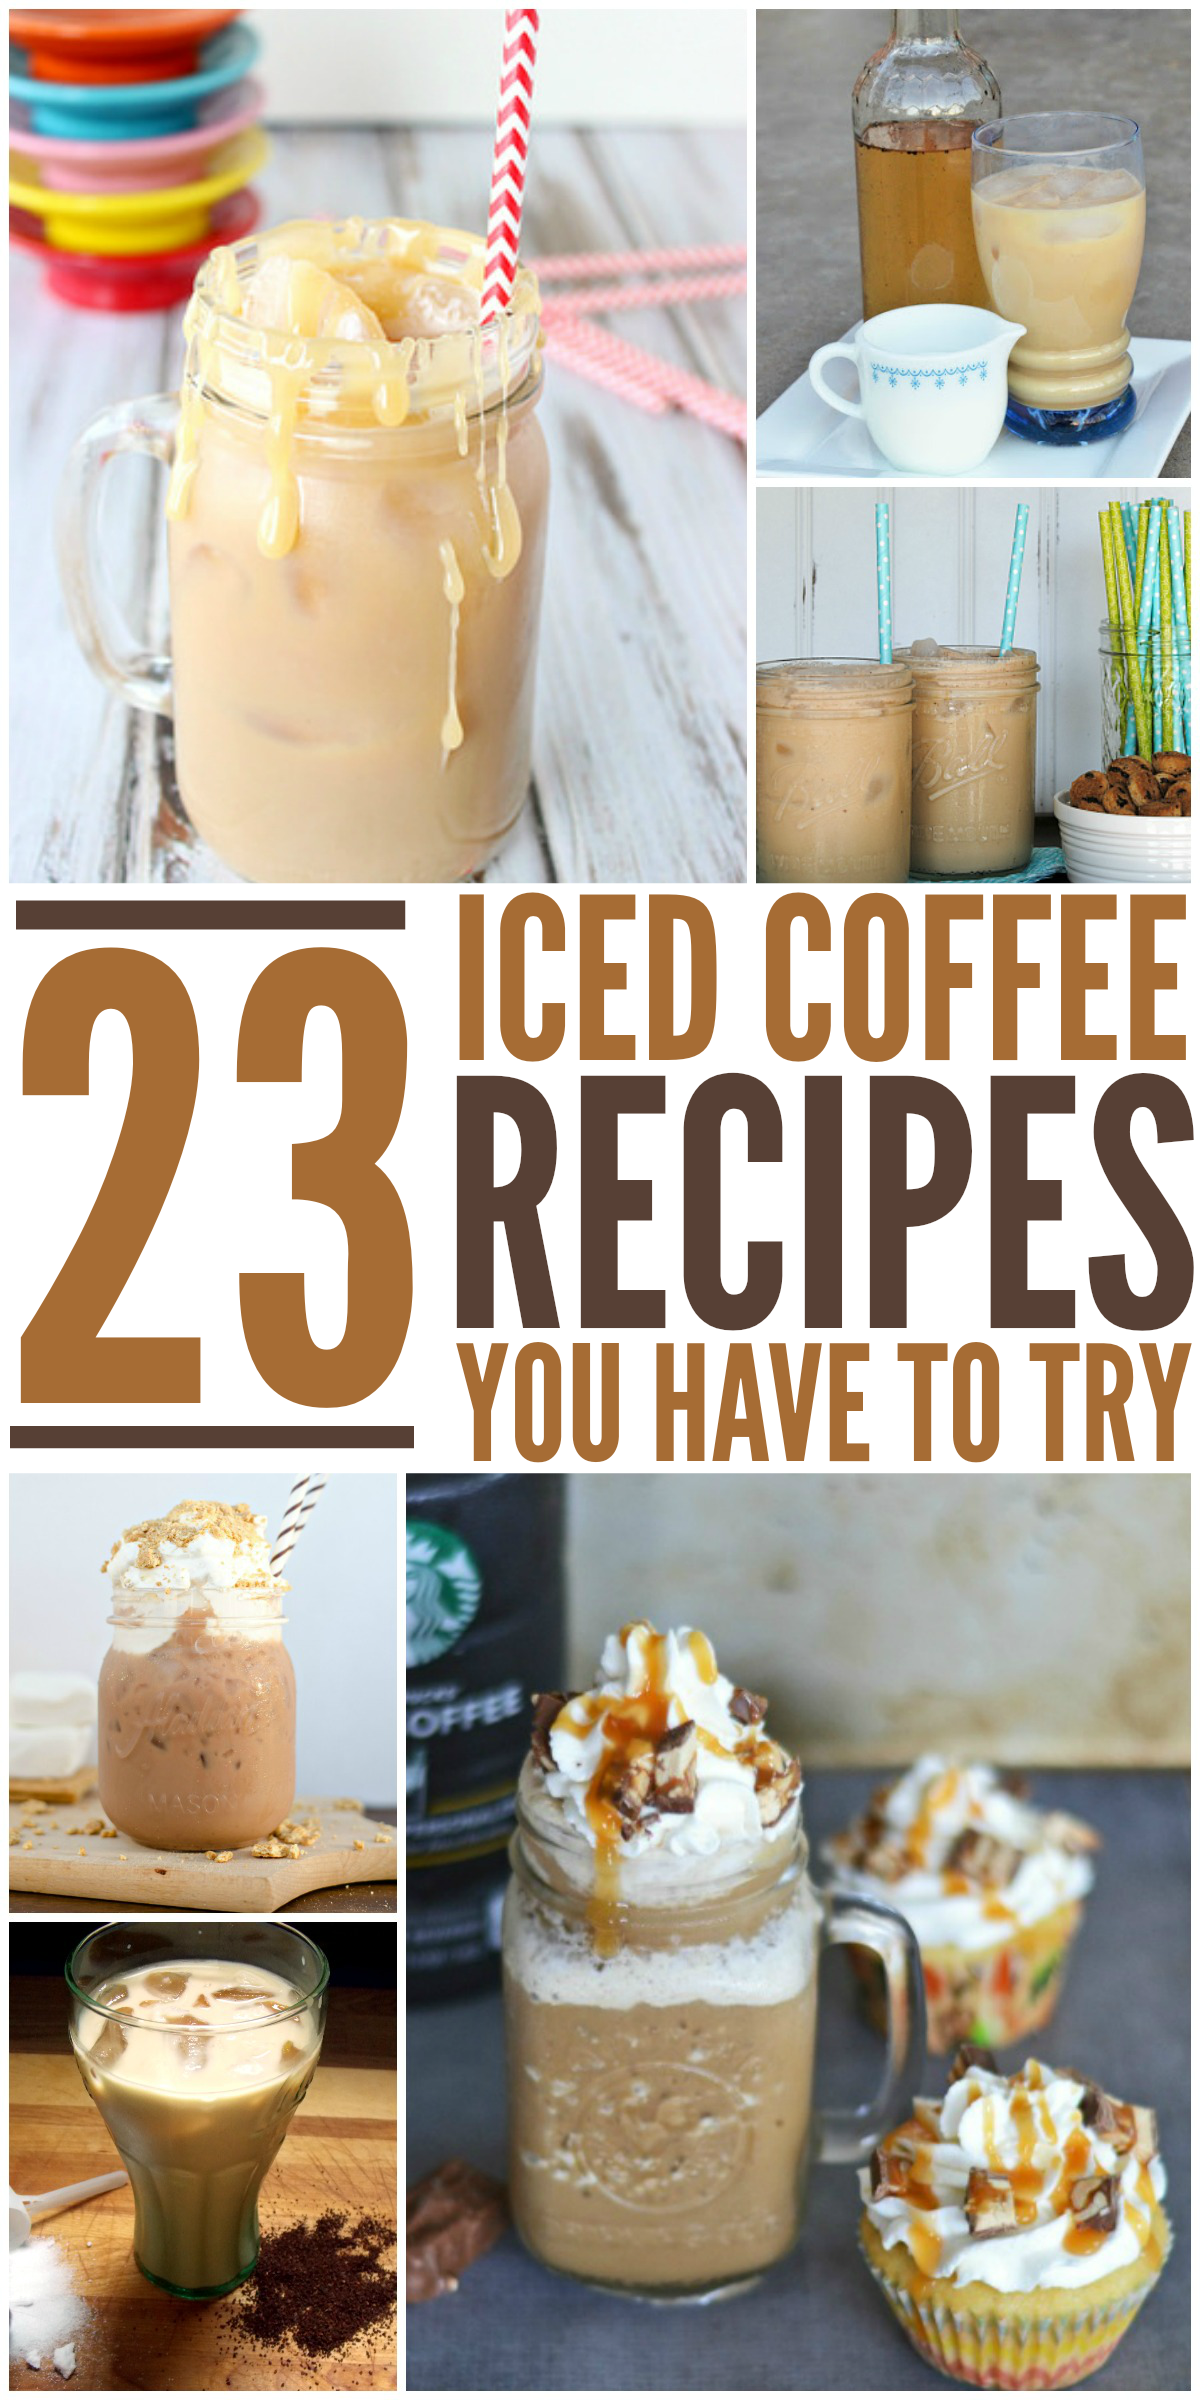 23 Iced Coffee Recipes You Have to Try - HMLP 48 Feature